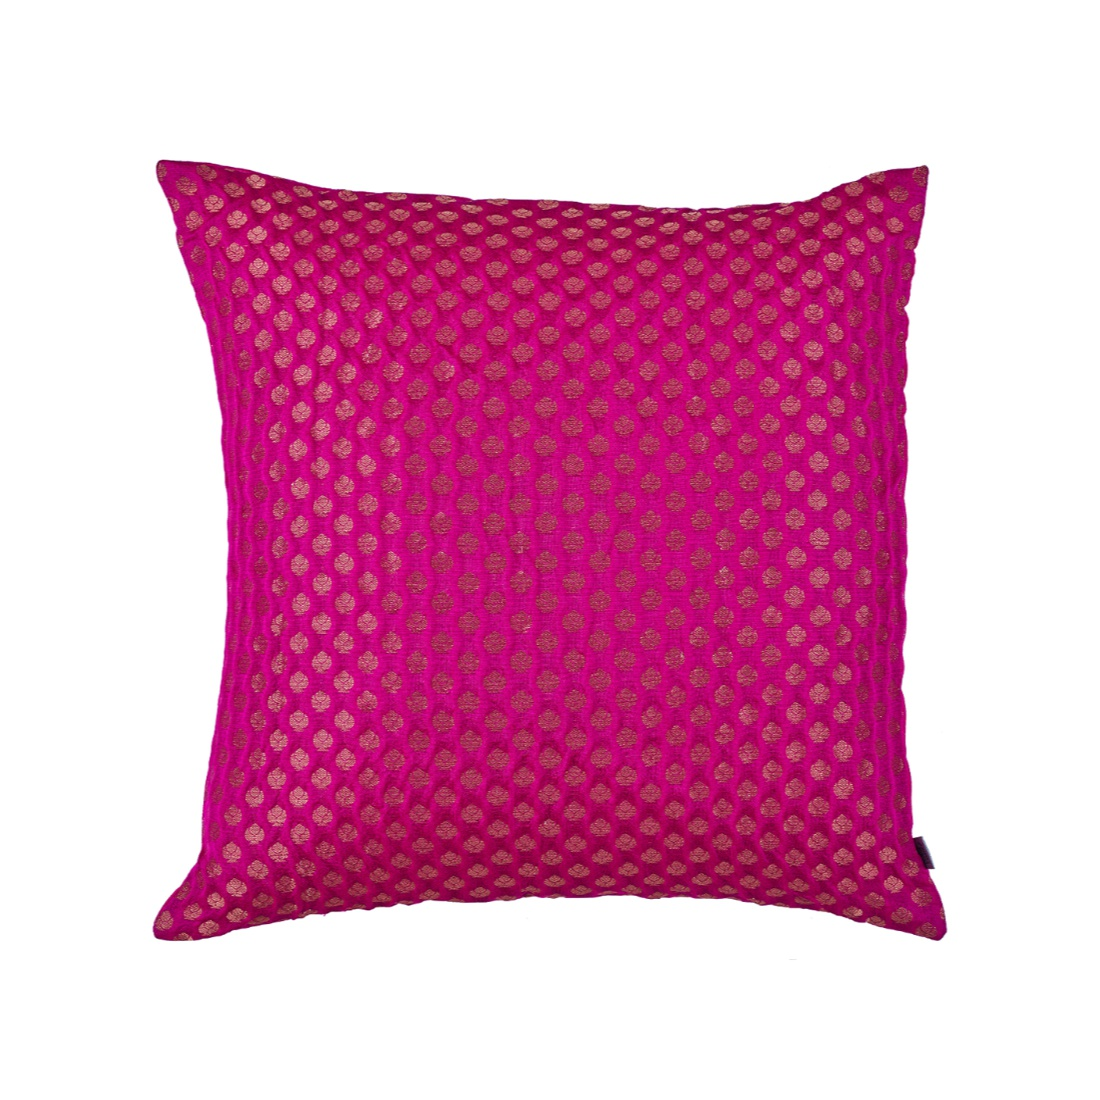 Noir Cushion Cover Pink Polyester Cushion Covers in Pink Colour by Living Essence